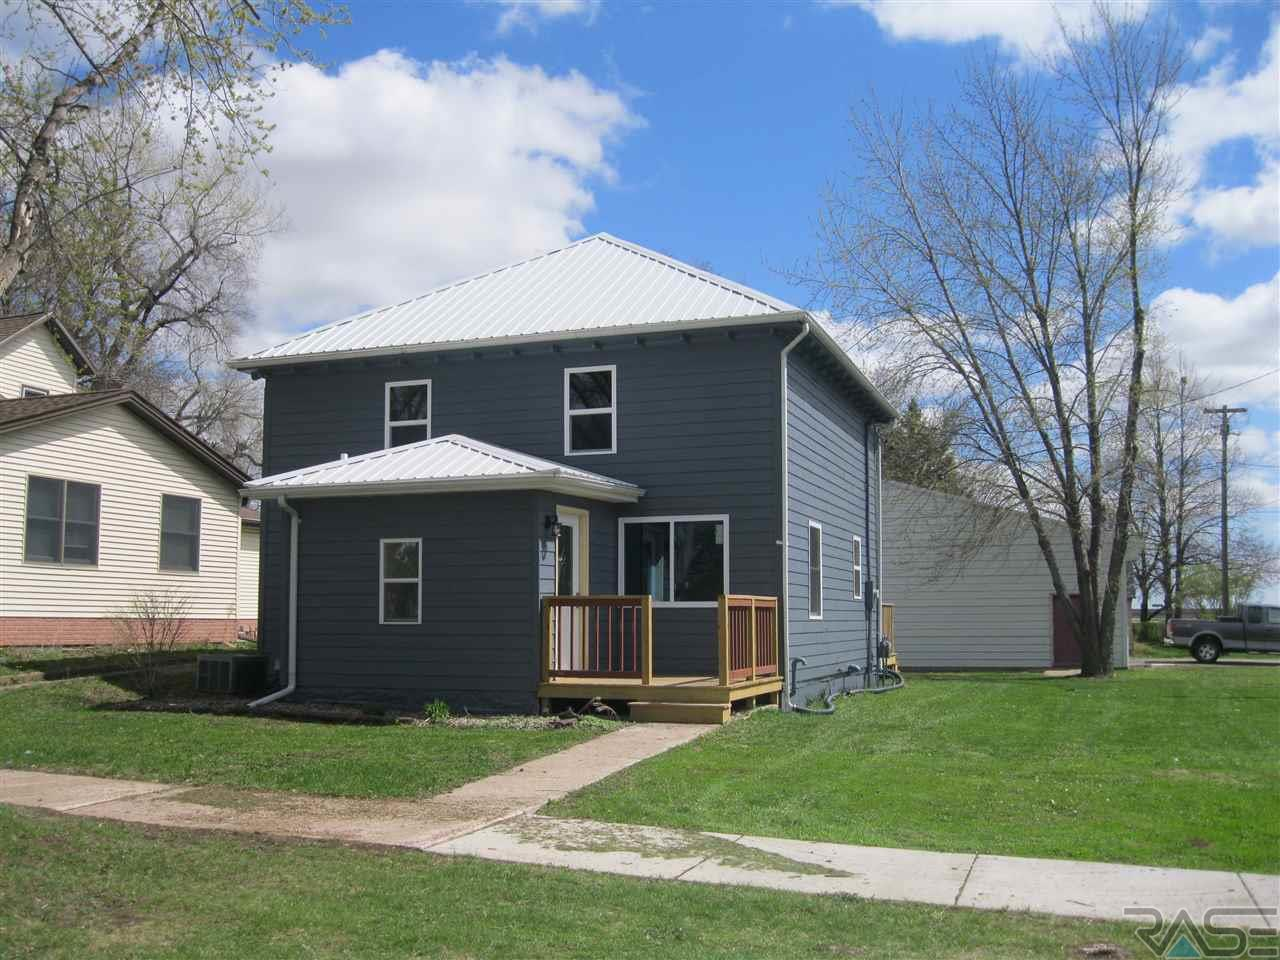 200 N 2nd Ave, Canistota, SD 57012